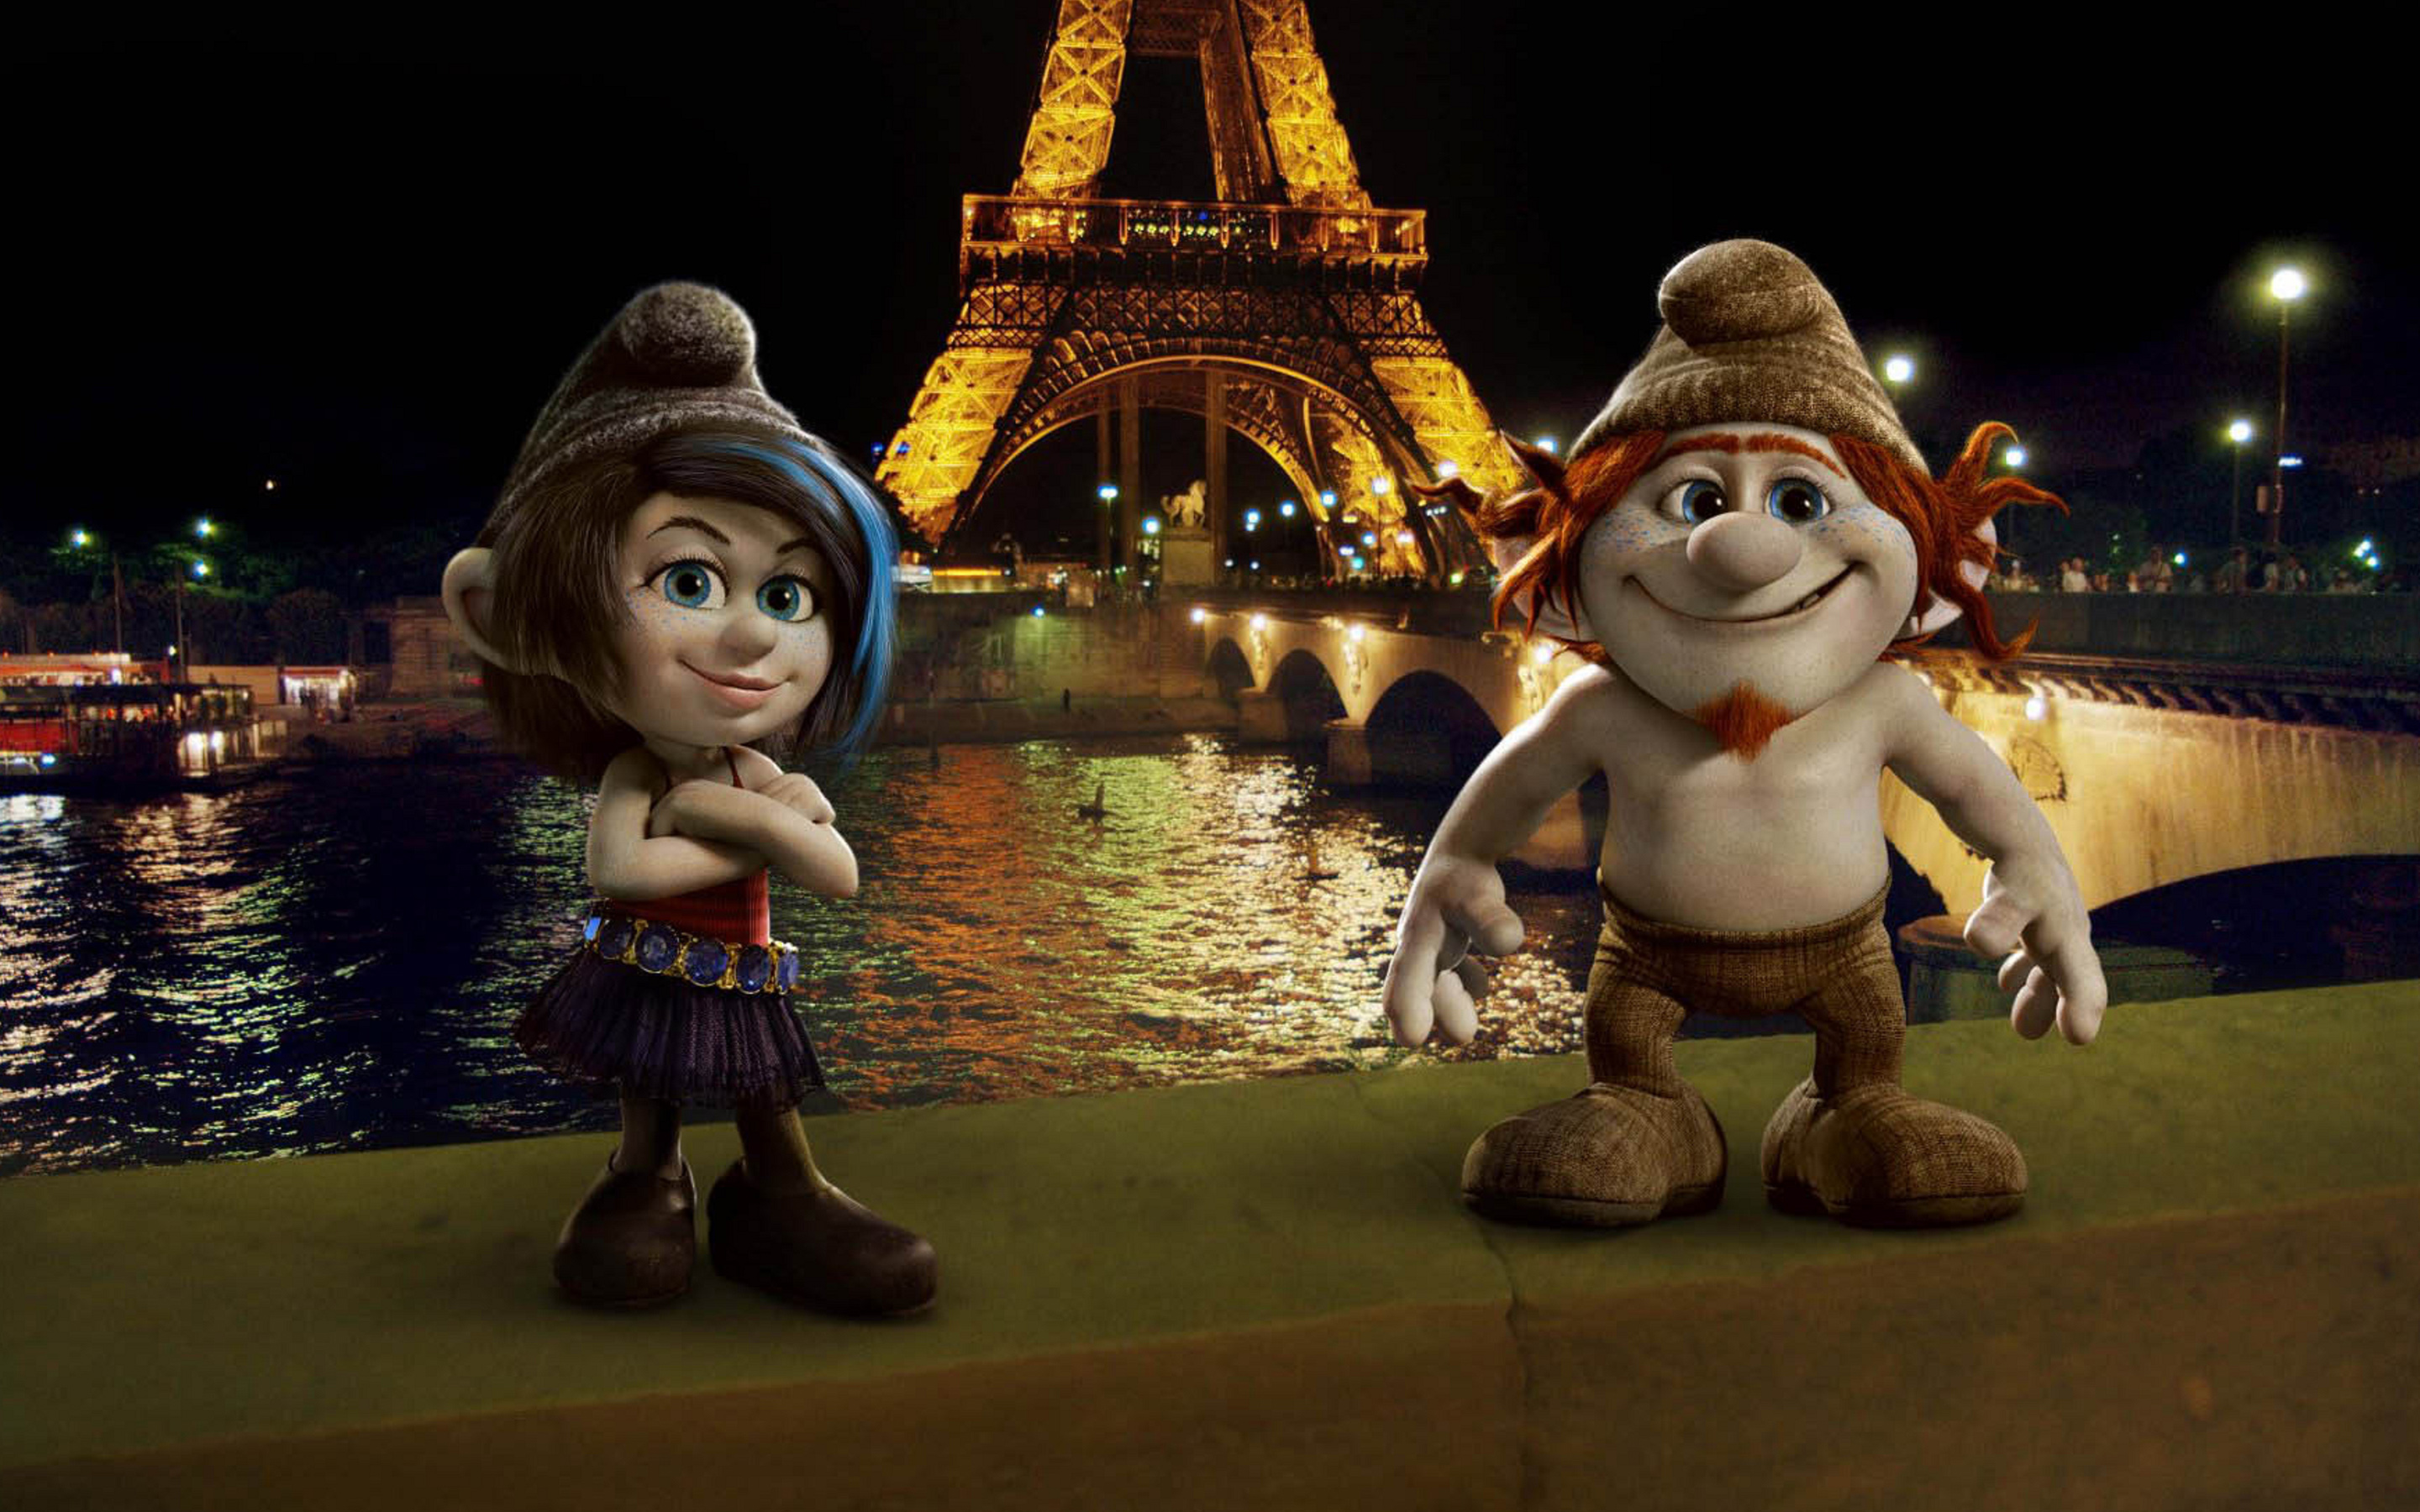 Vexy and Hackus in Smurfs 2